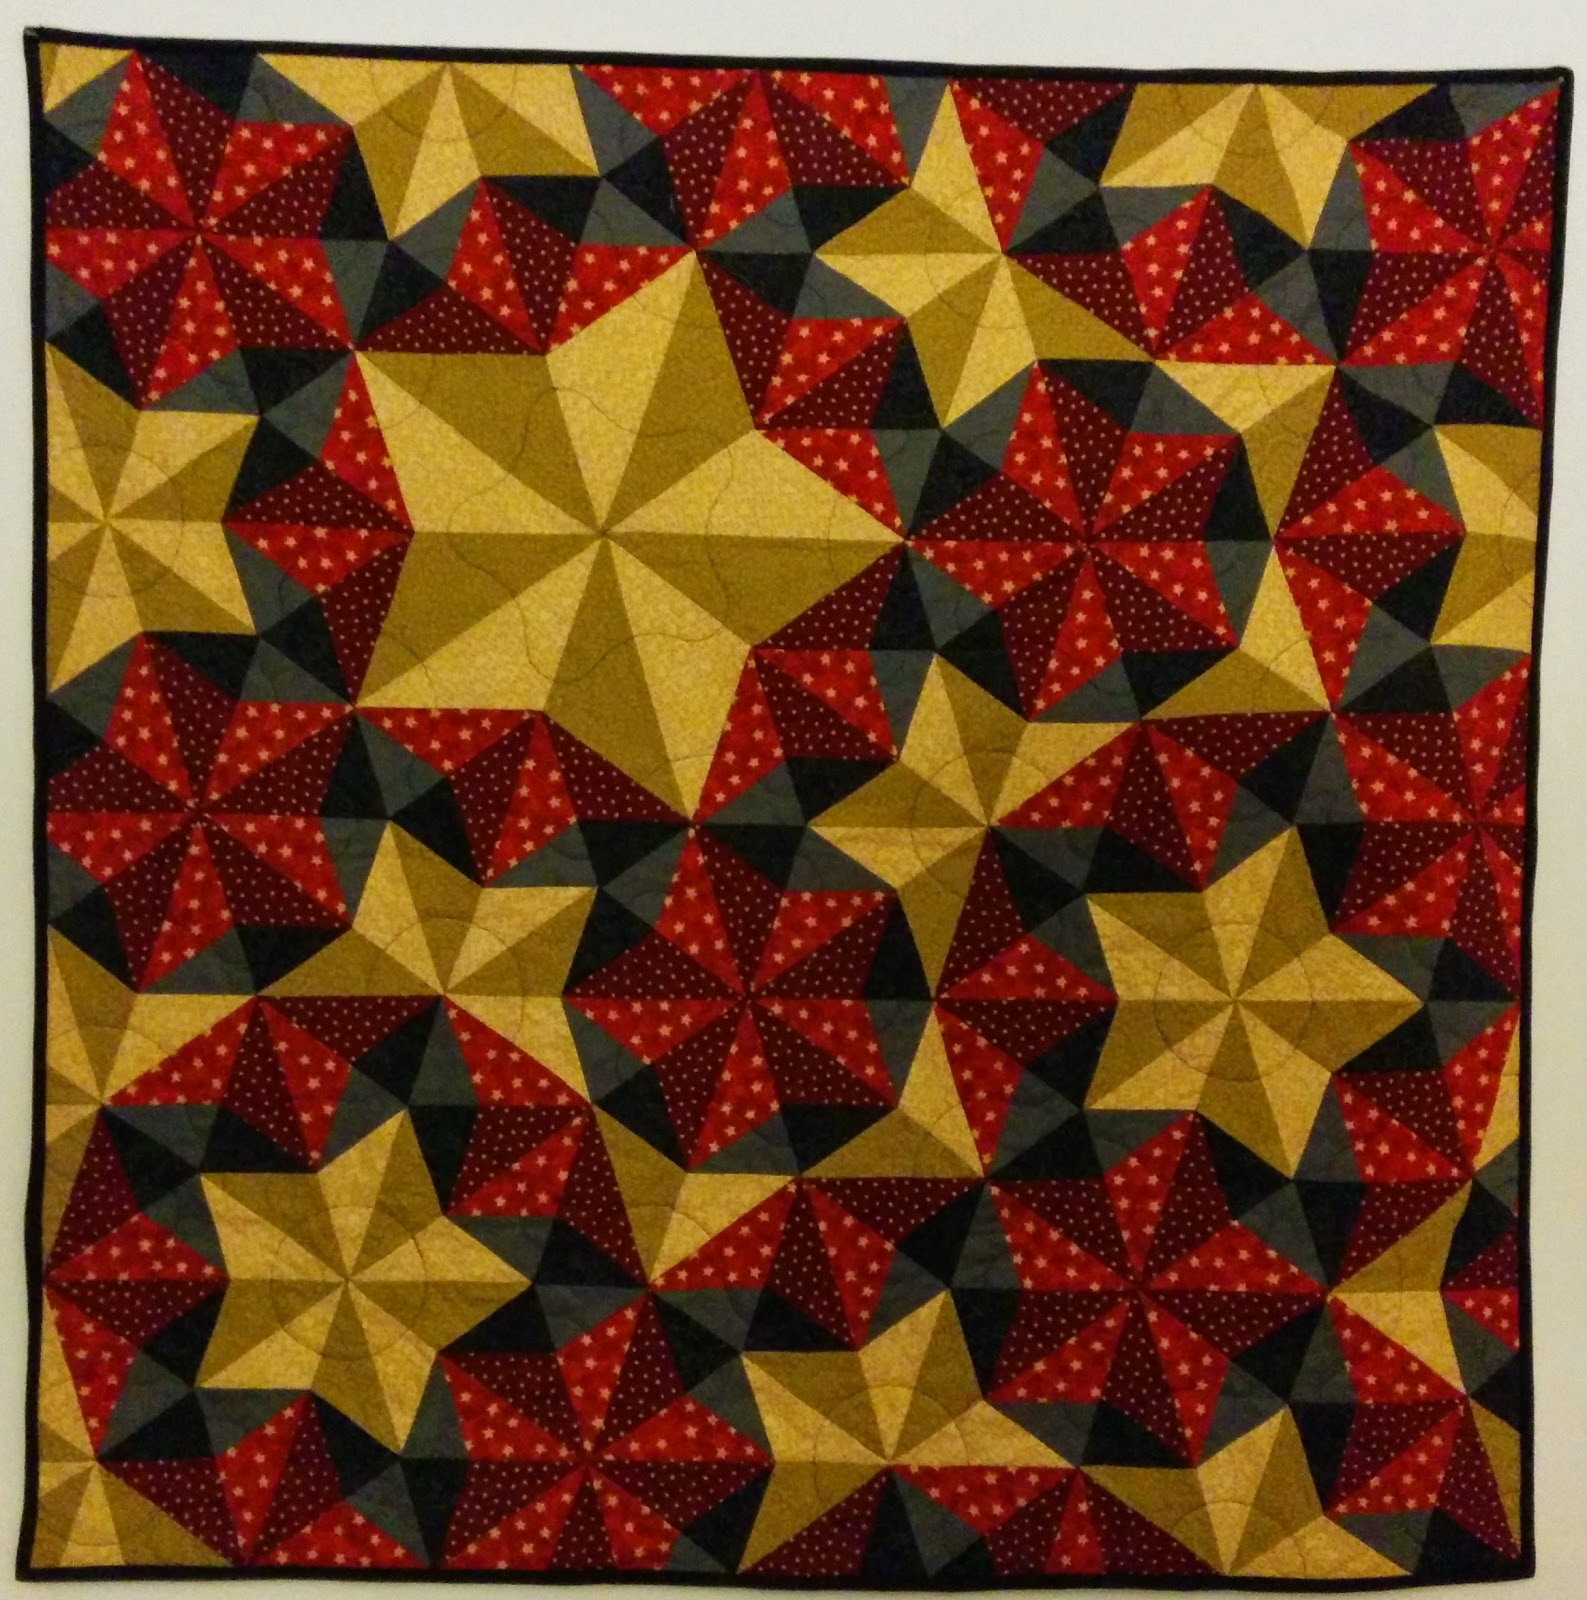 Dunawi Creek: Penrose Tile Quilt with Mylchreest Stars - Design Phase : tile quilt - Adamdwight.com